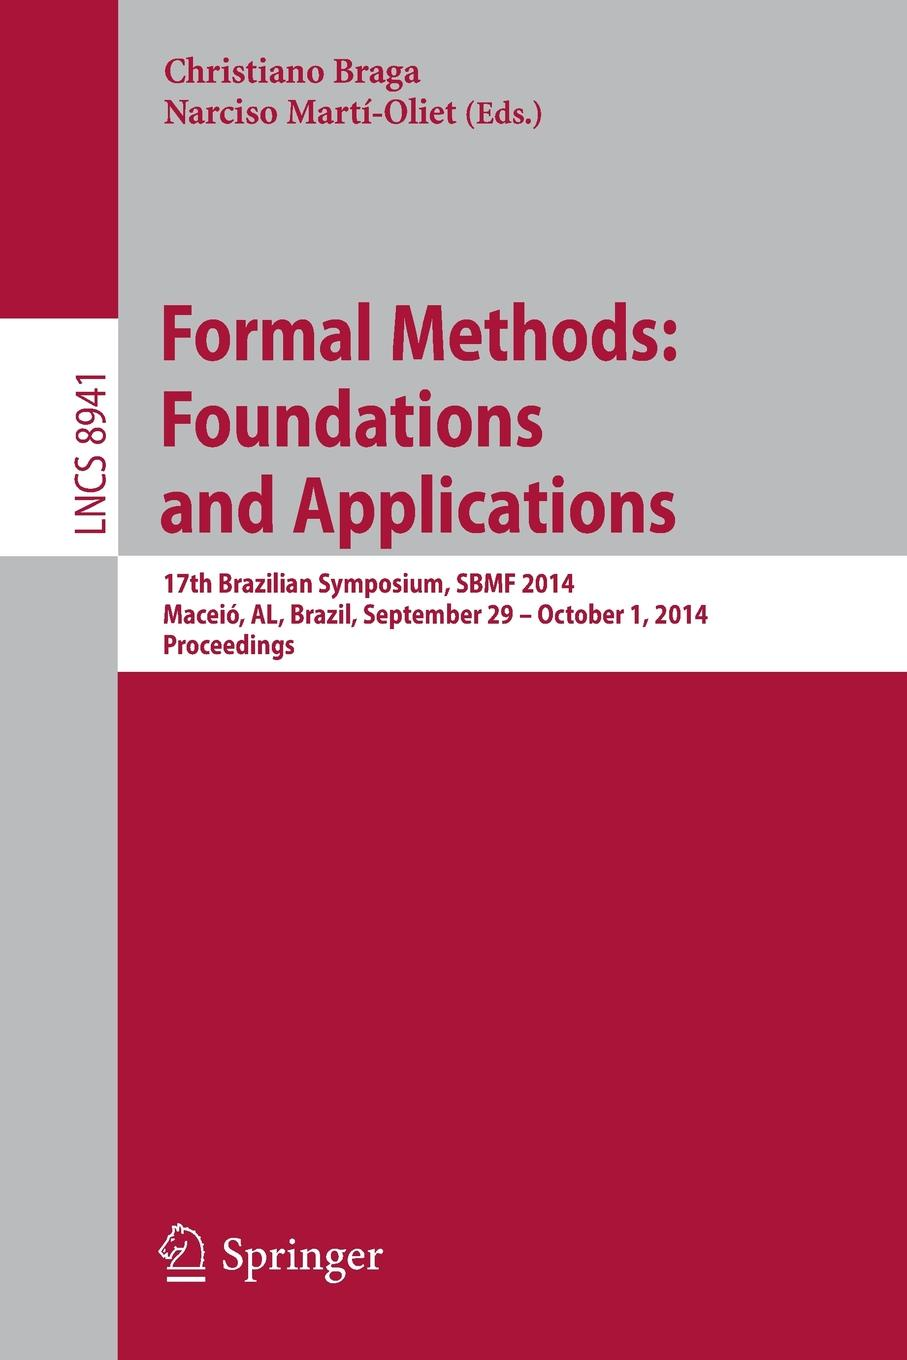 Formal Methods. Foundations and Applications : 17th Brazilian Symposium, SBMF 2014, Maceio, AL, Brazil, September 29--October 1, 2014. Proceedings angela henderson c family theories foundations and applications